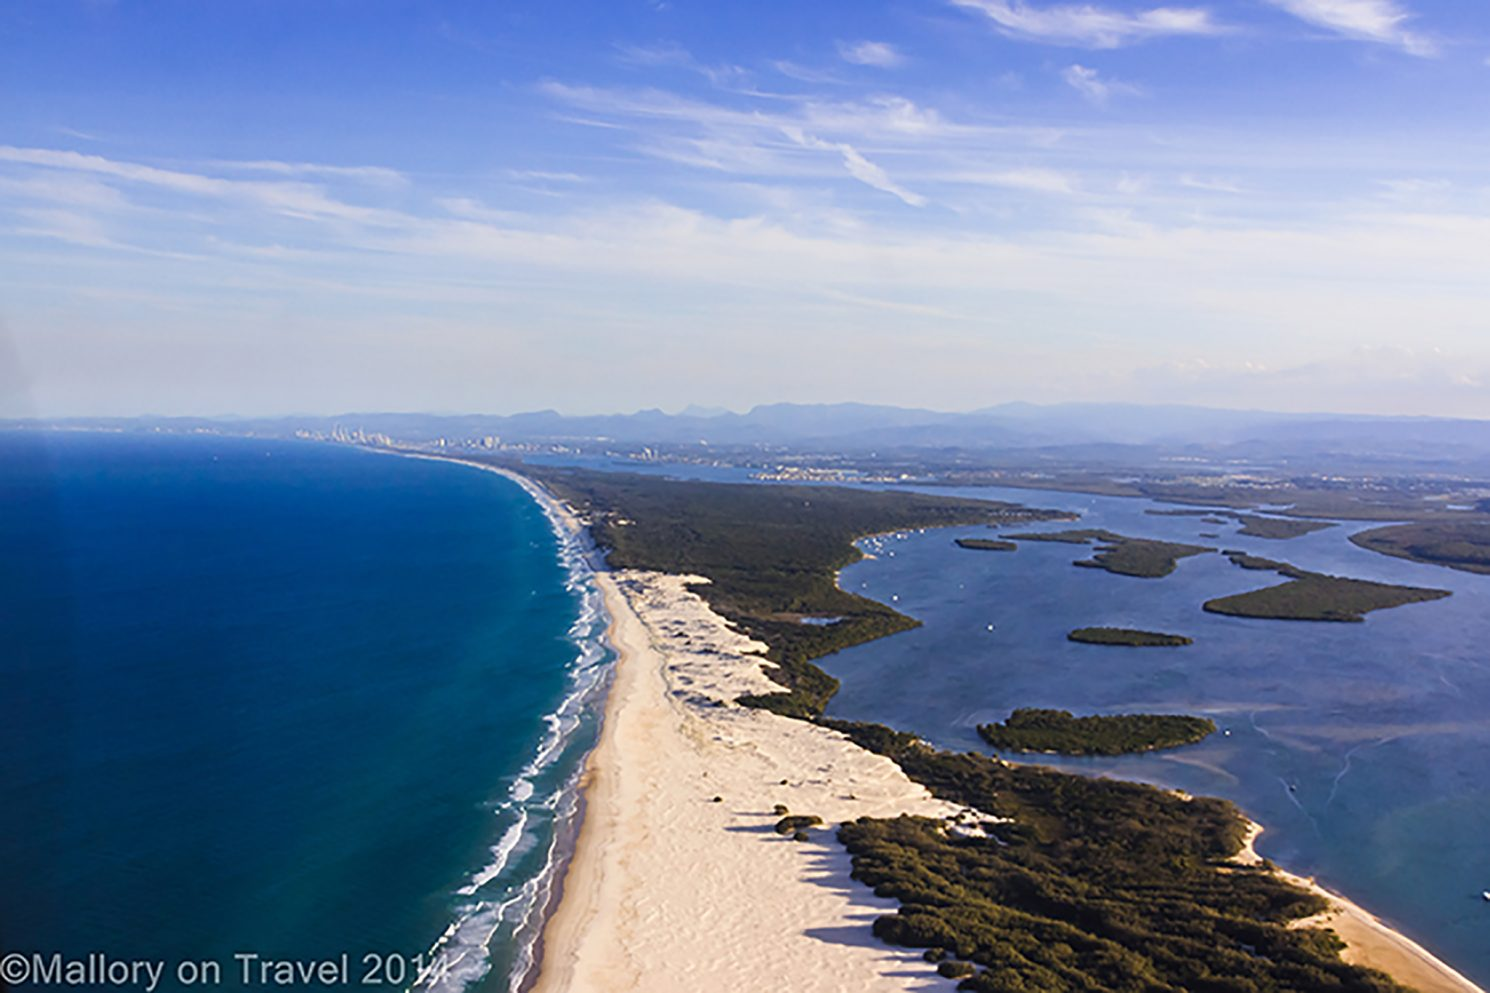 Aerial views of the Gold Coast, Queensland in Australia on Mallory on Travel adventure, adventure travel, photography Iain Mallory-300-451 aerial_queensland